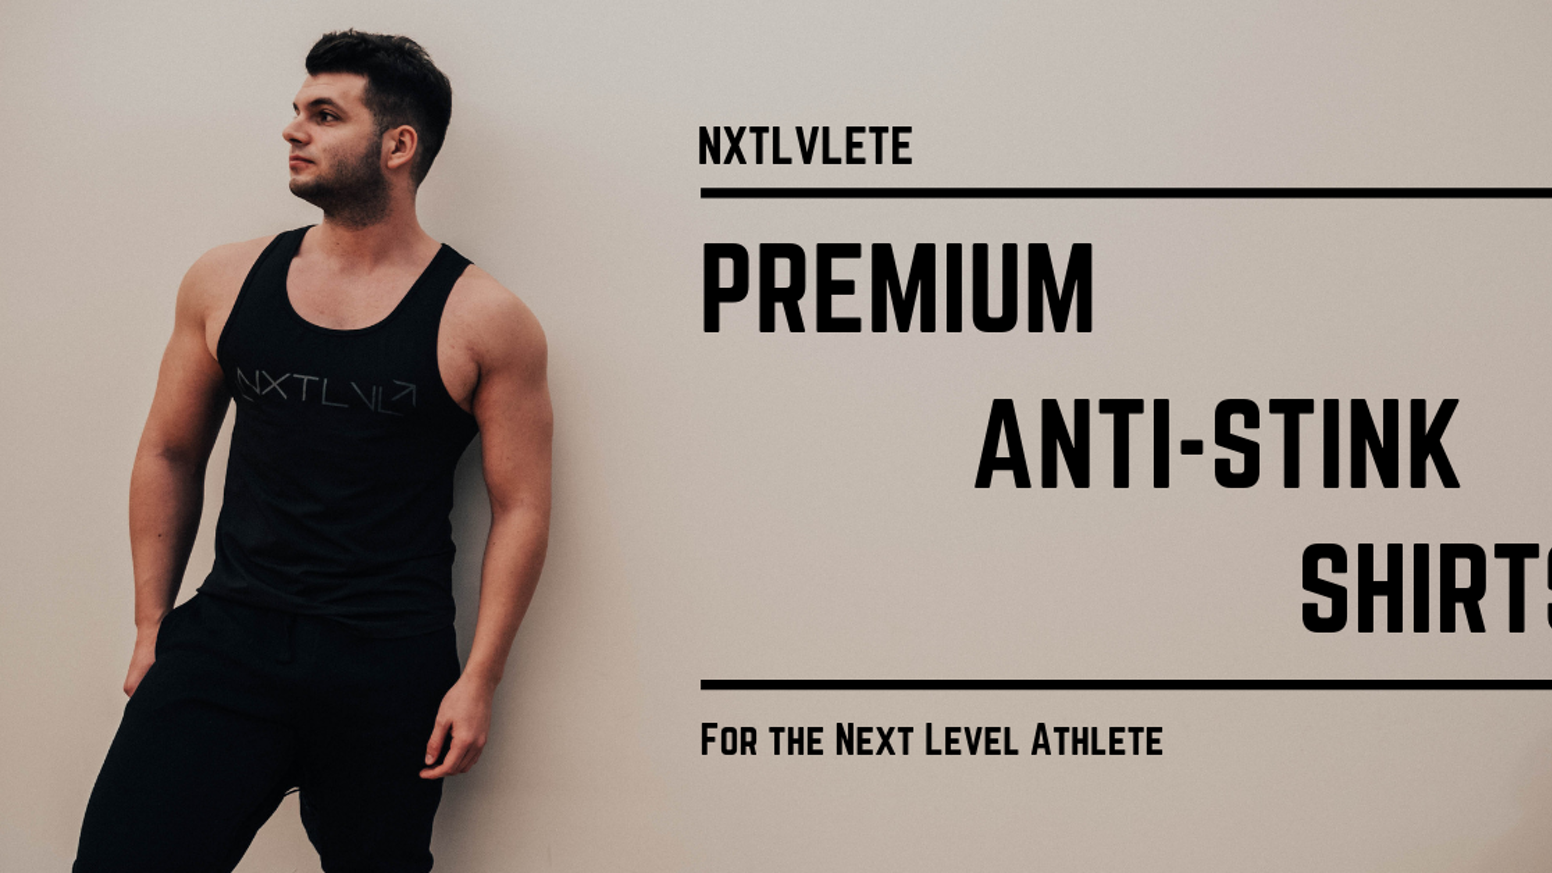 745444c7 Next Level Fitness Apparel designed for Next Level Athletes. The World's  First Premium Anti-